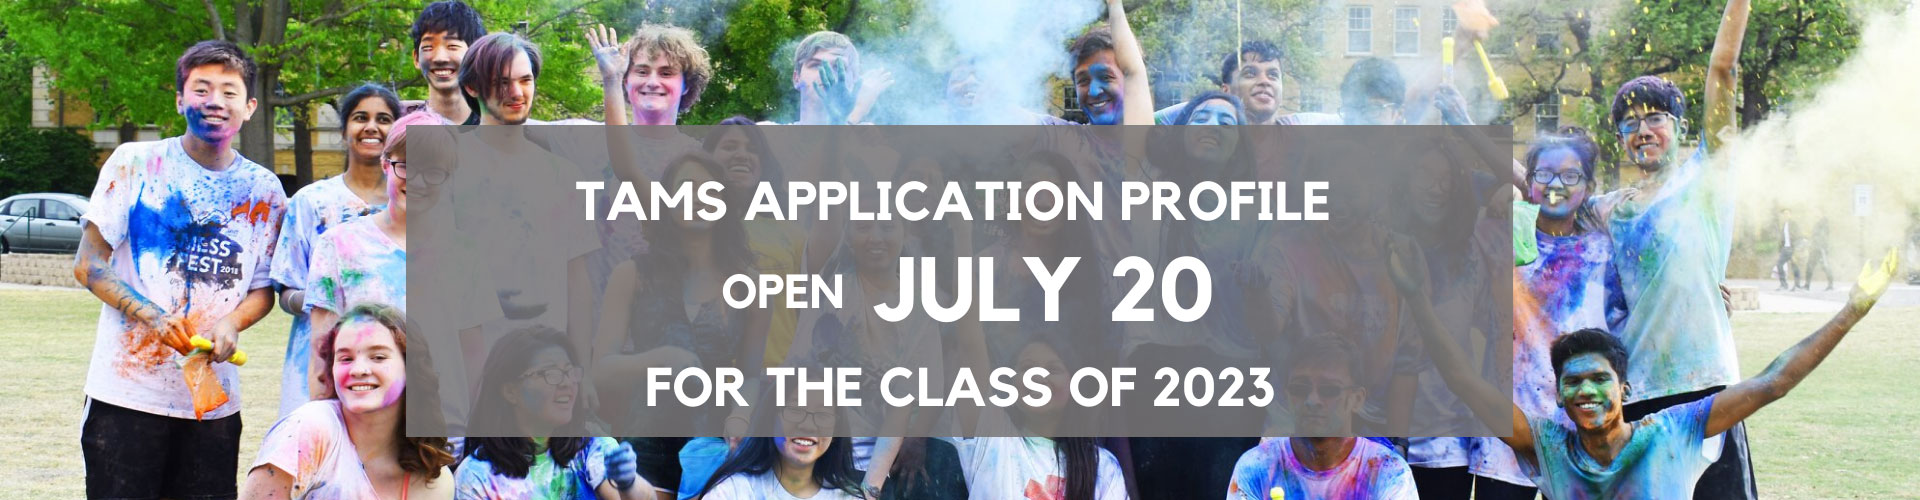 TAMS Class of 2023 Application opens July 20, 2020